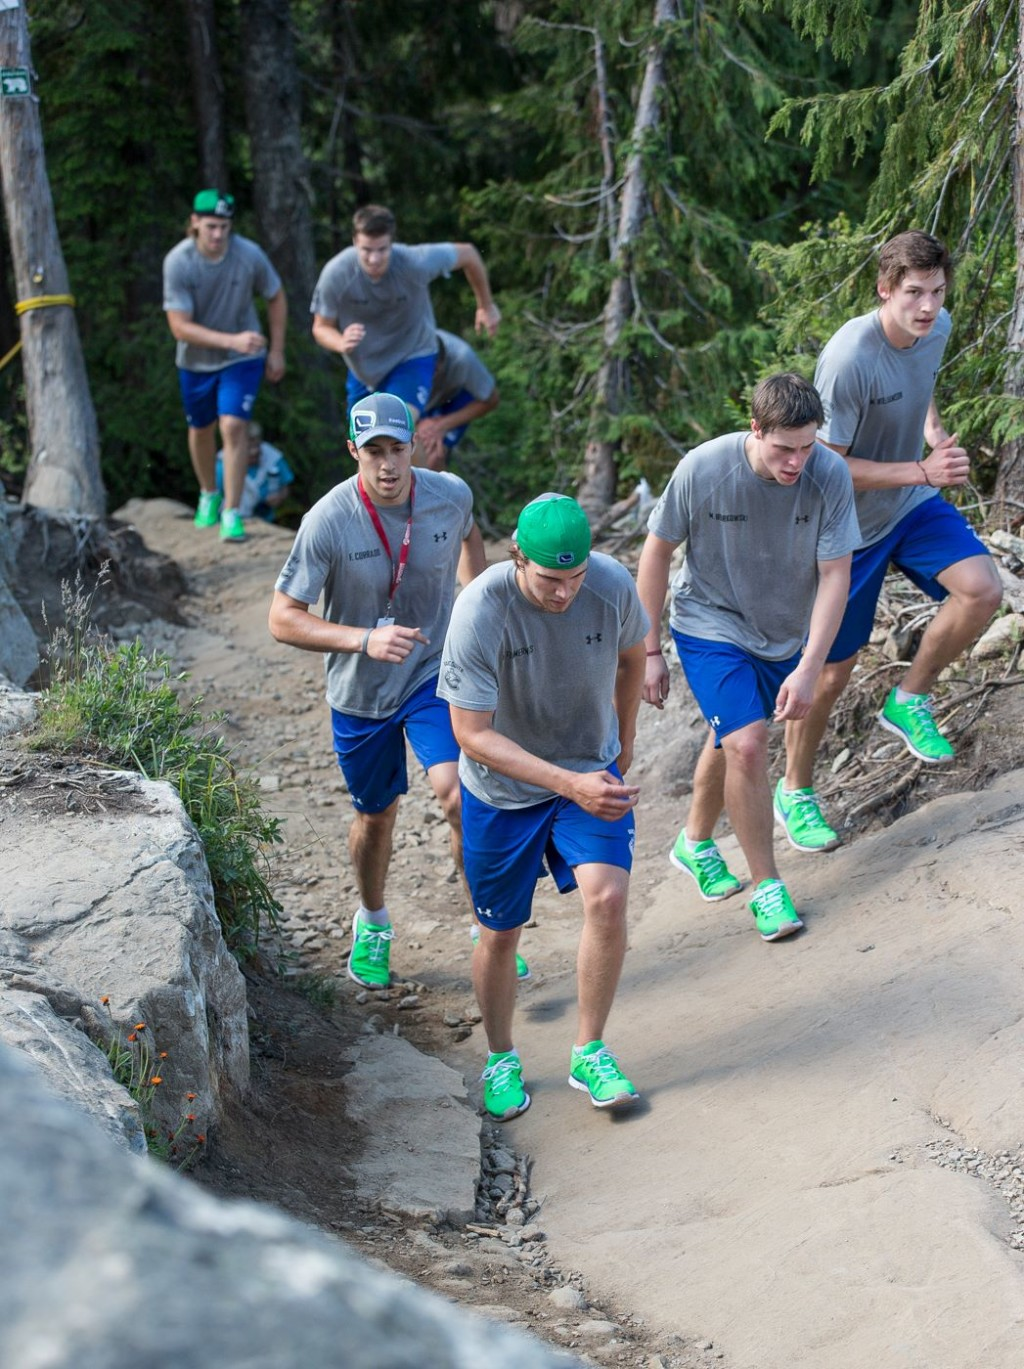 Vancouver Canucks Grouse Grind